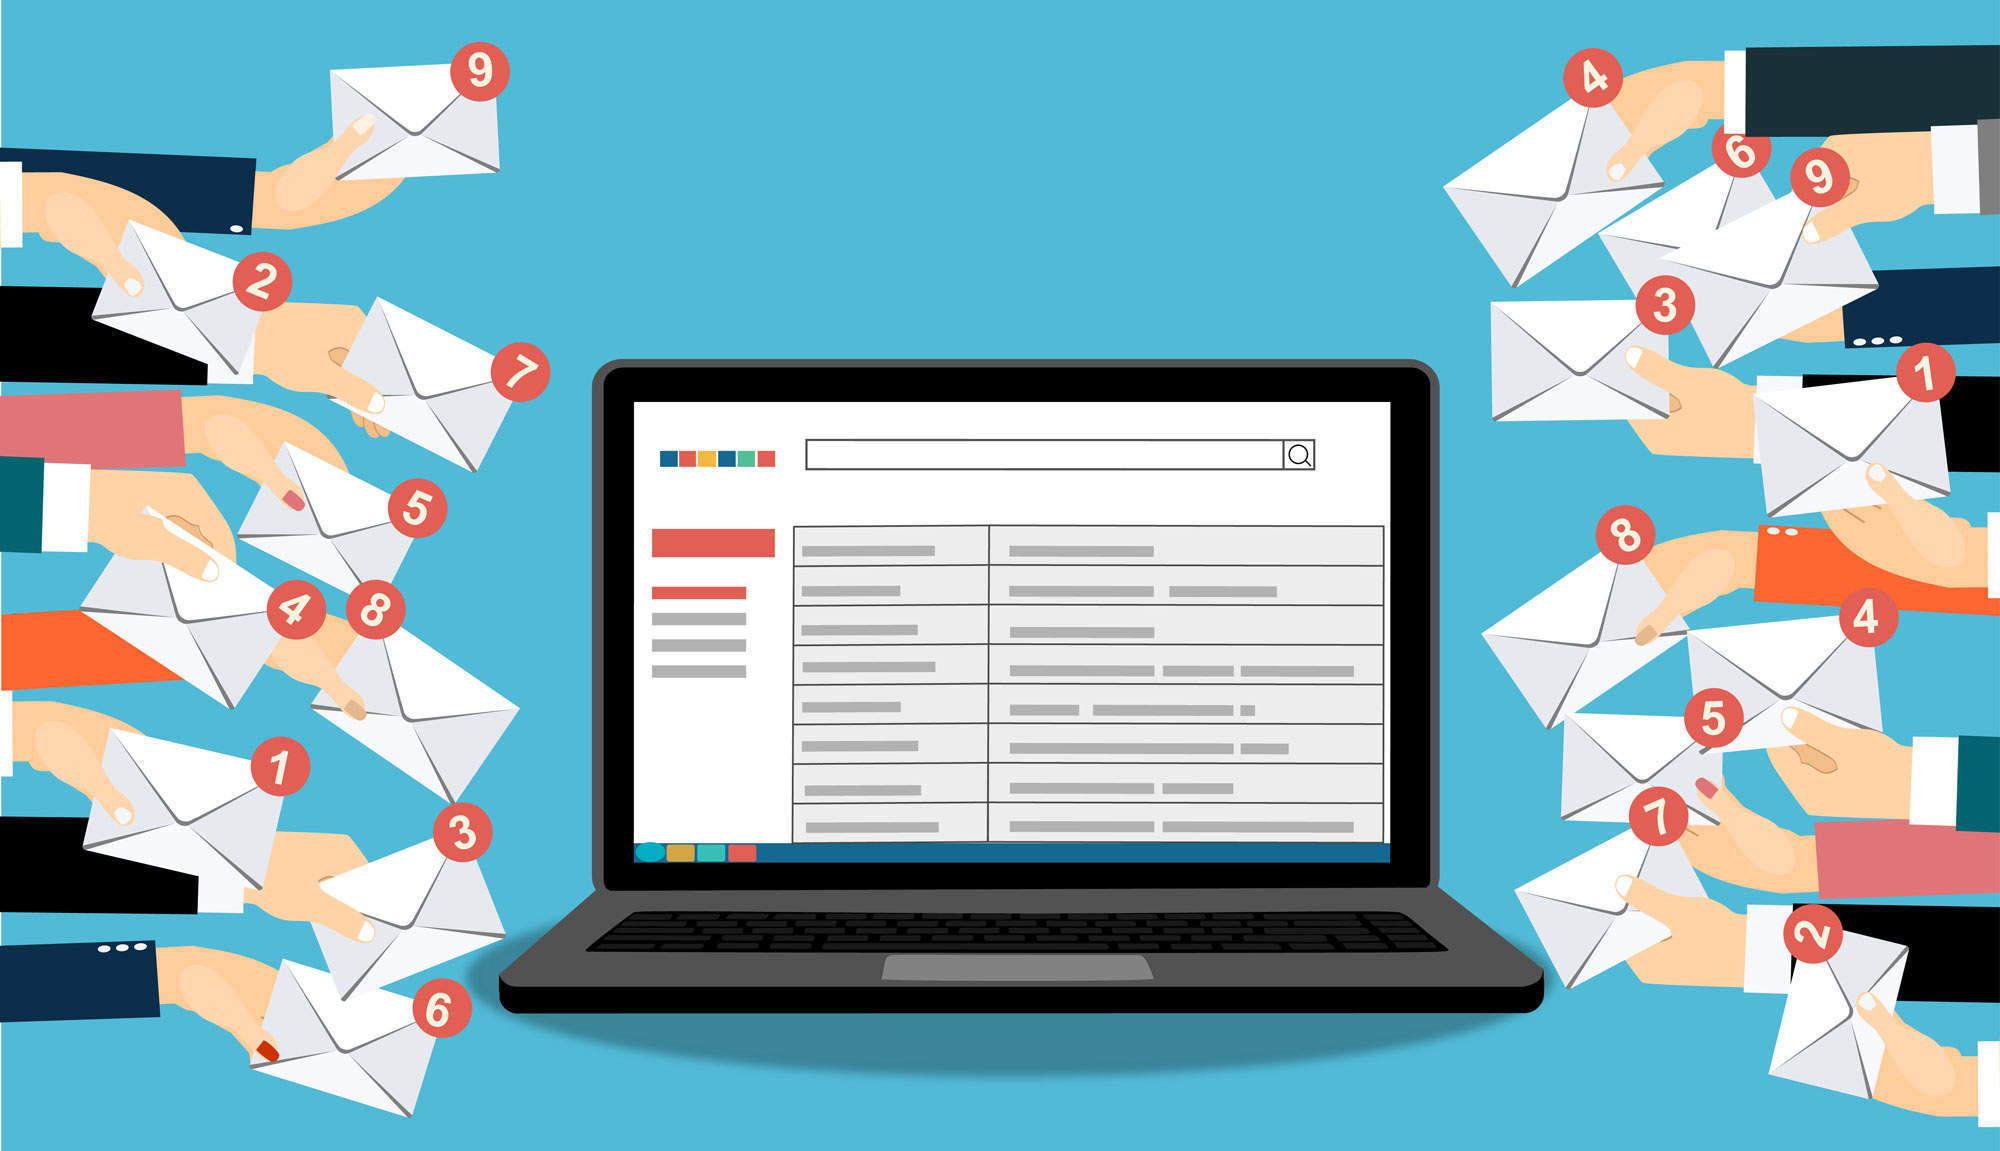 Data breach alert: Email attacks are on the rise and humans are the weakest link